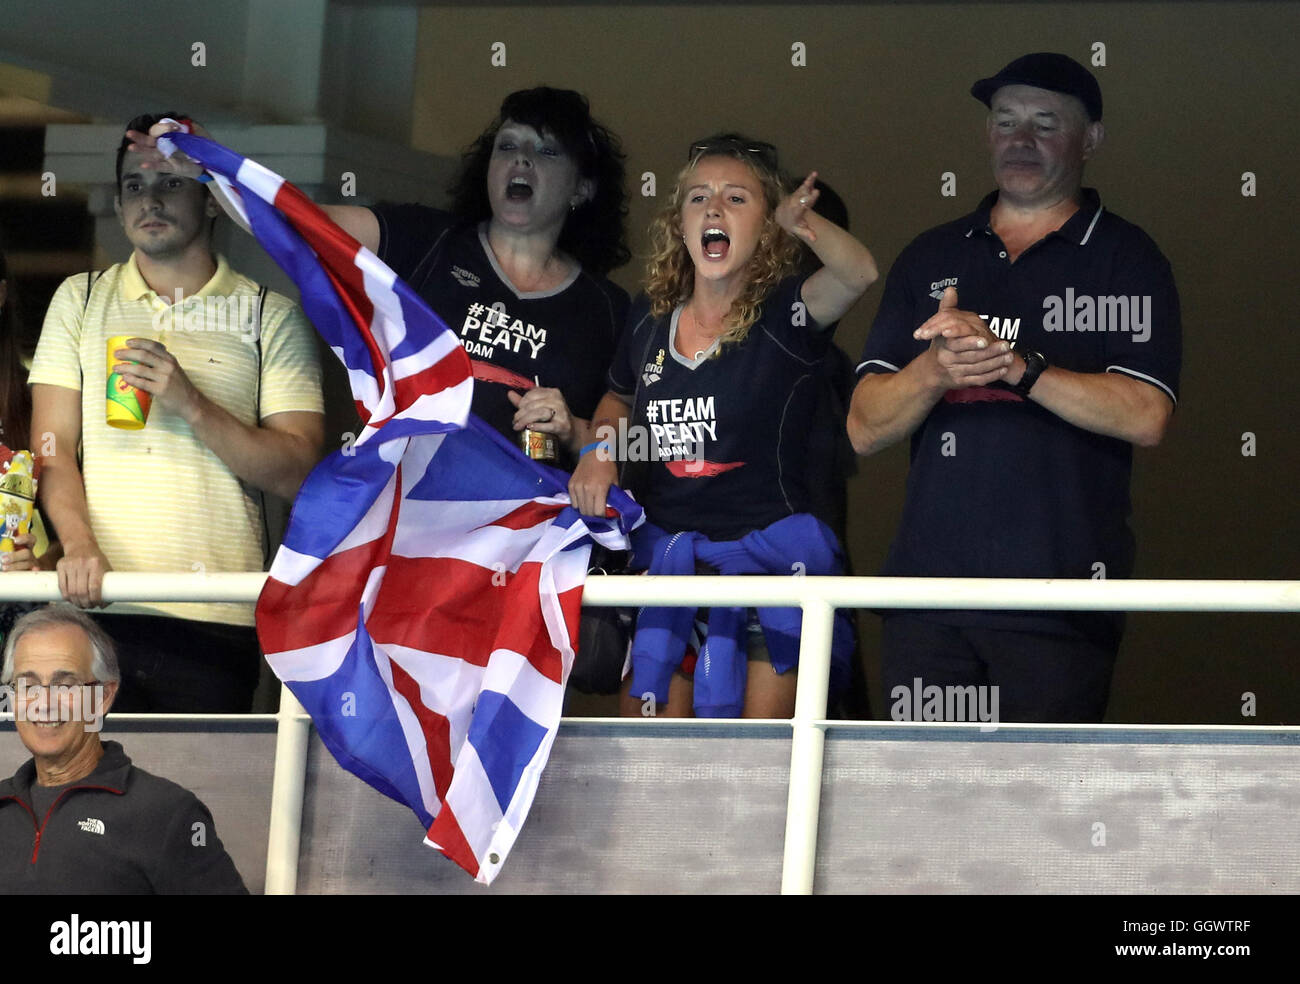 Mark and Caroline Peaty who await the Men's 100m Final where their son will Adam will race for an Olympic medal - Stock Image